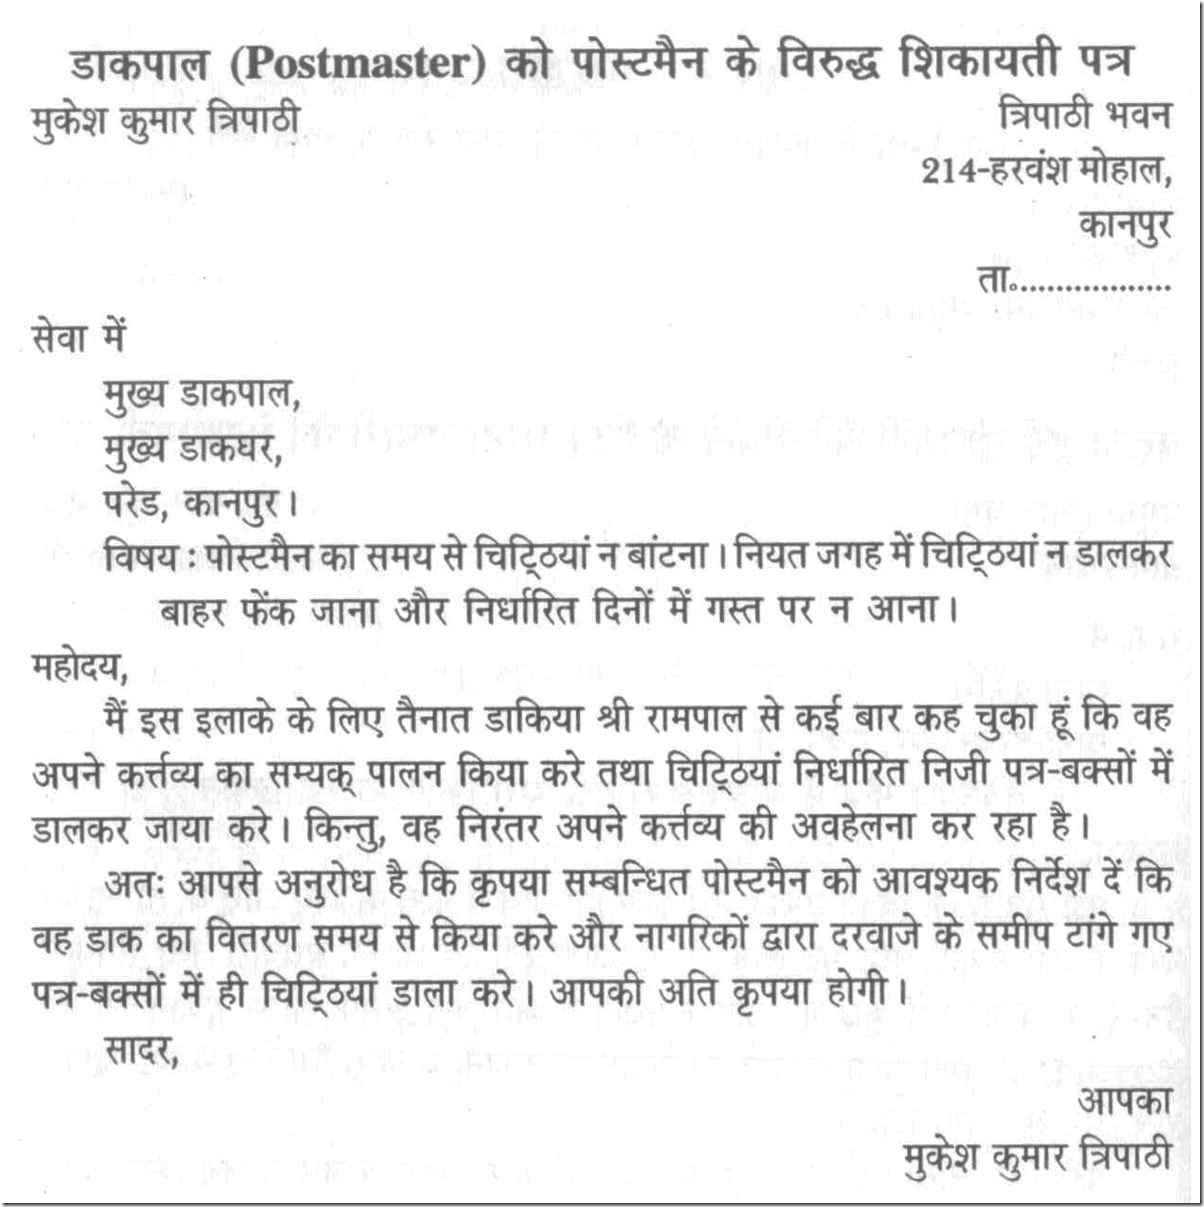 complaint letter format in hindi